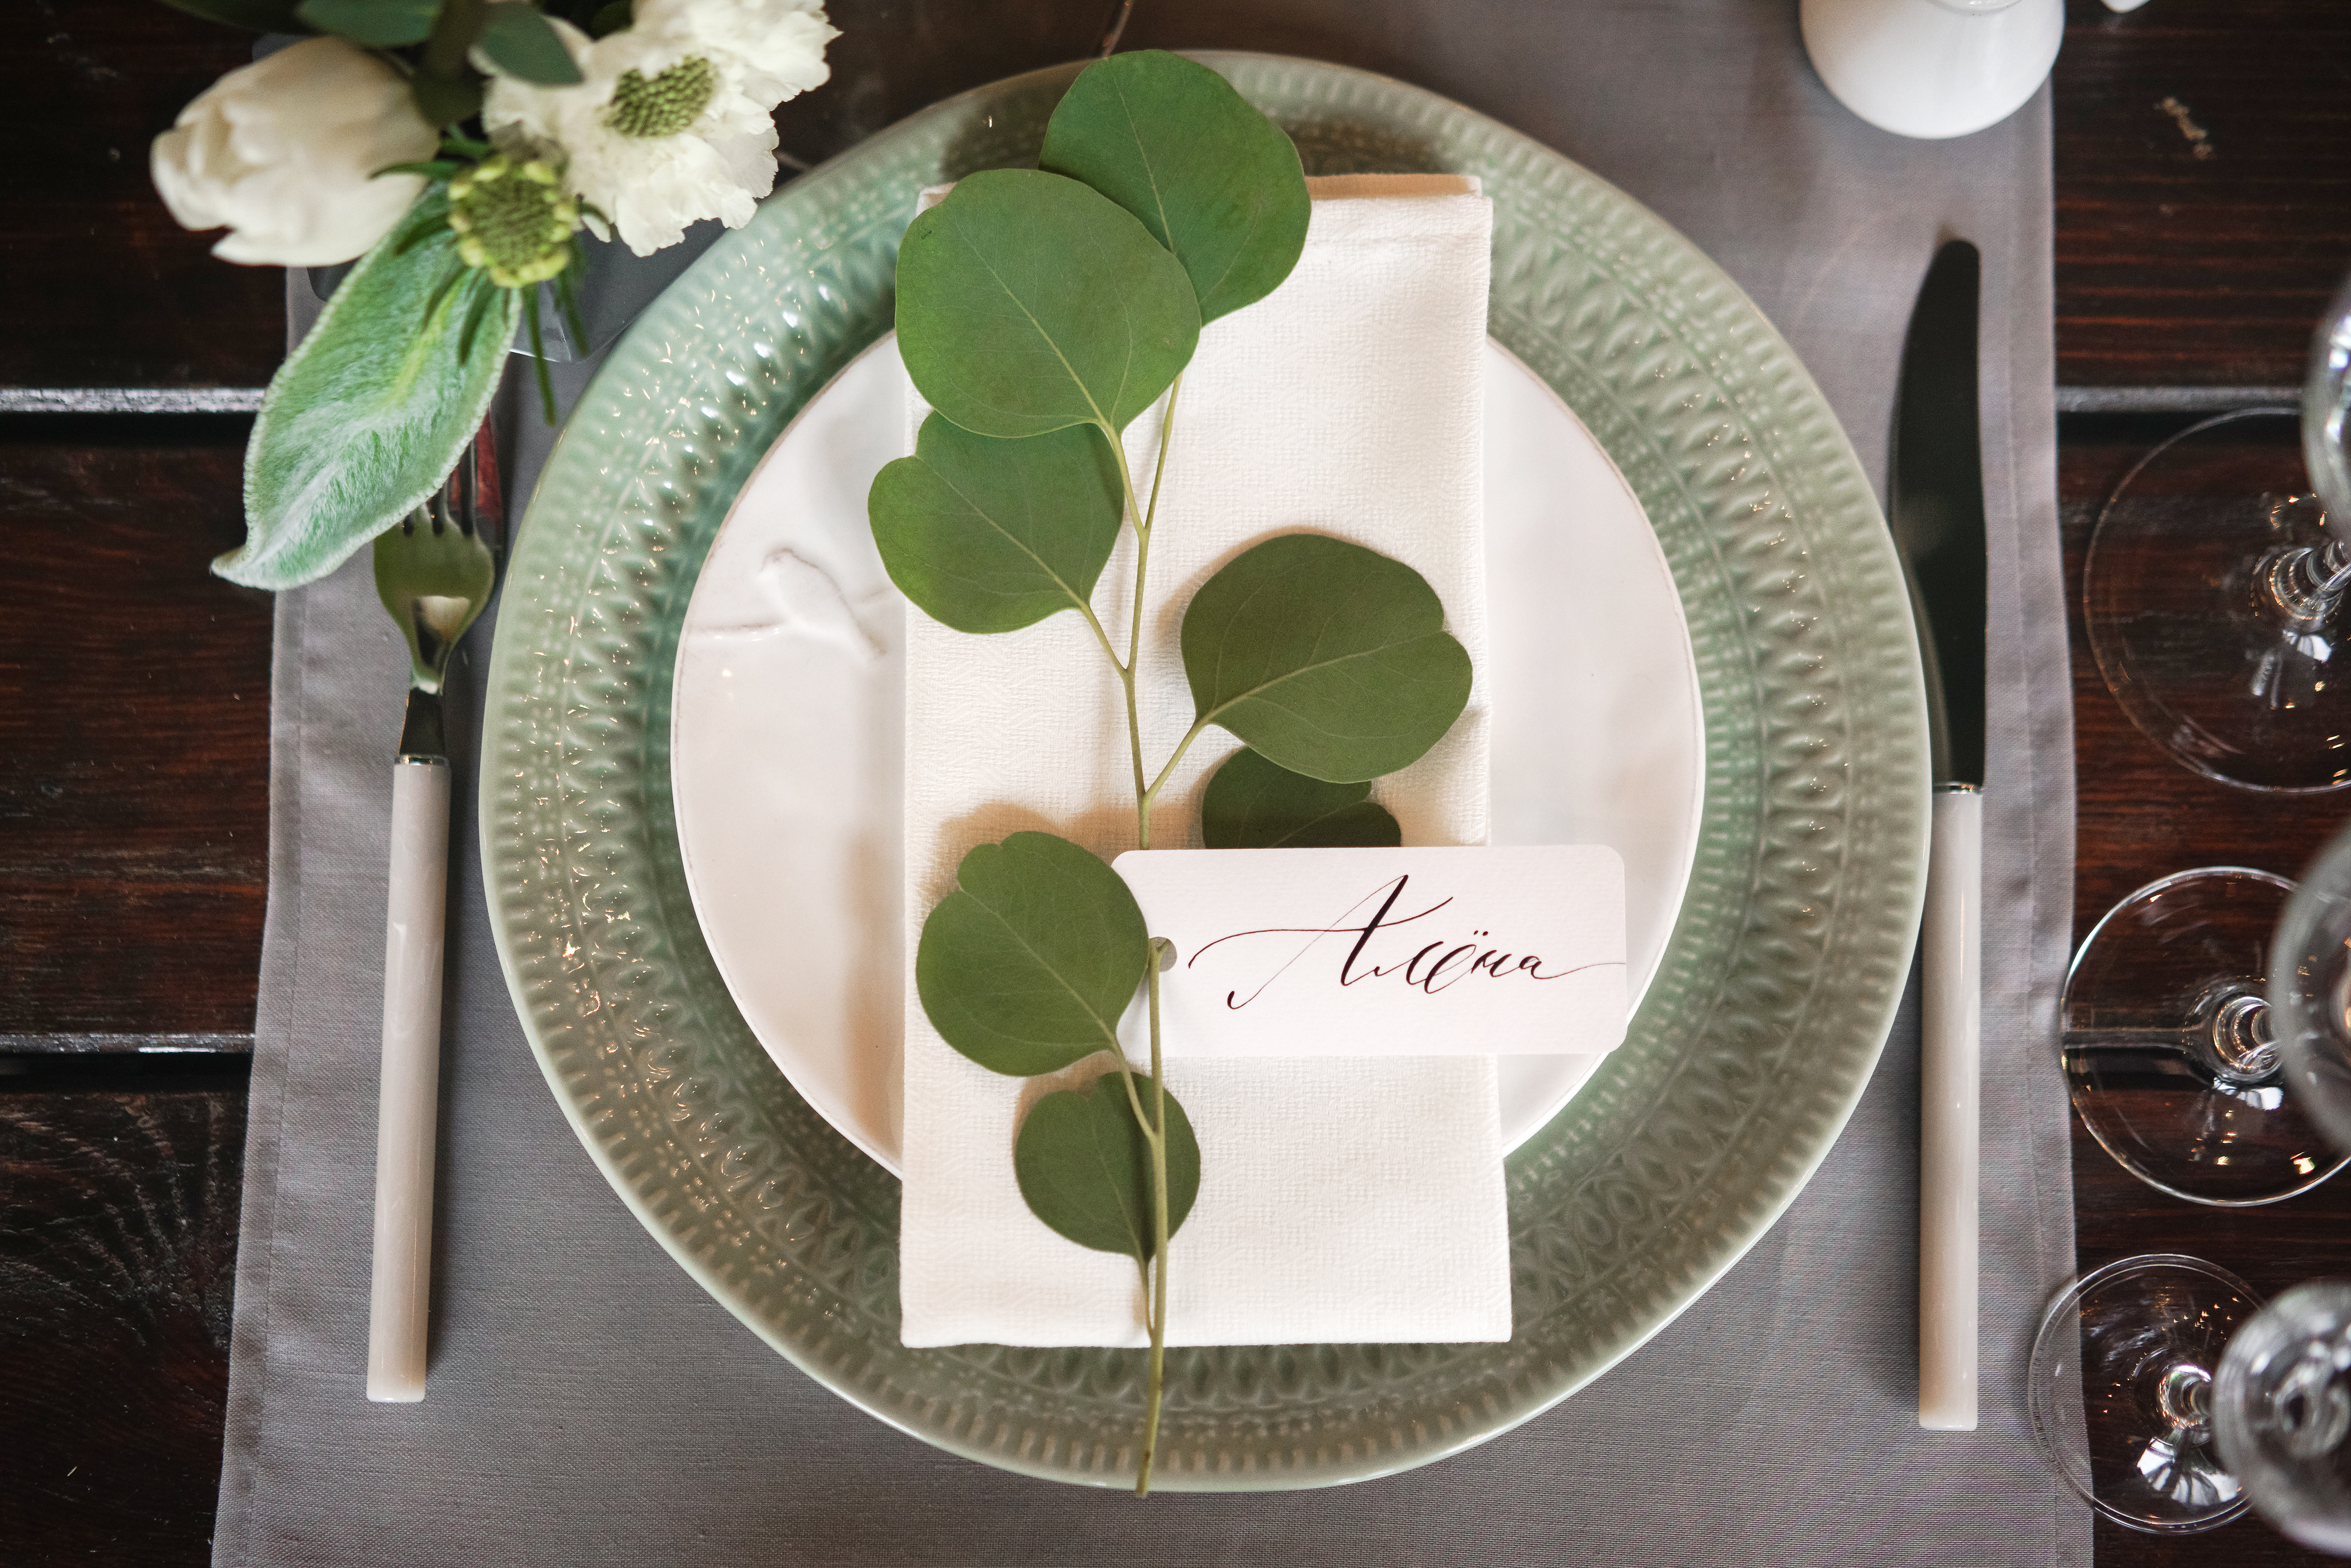 place setting with leafy accent and flowers